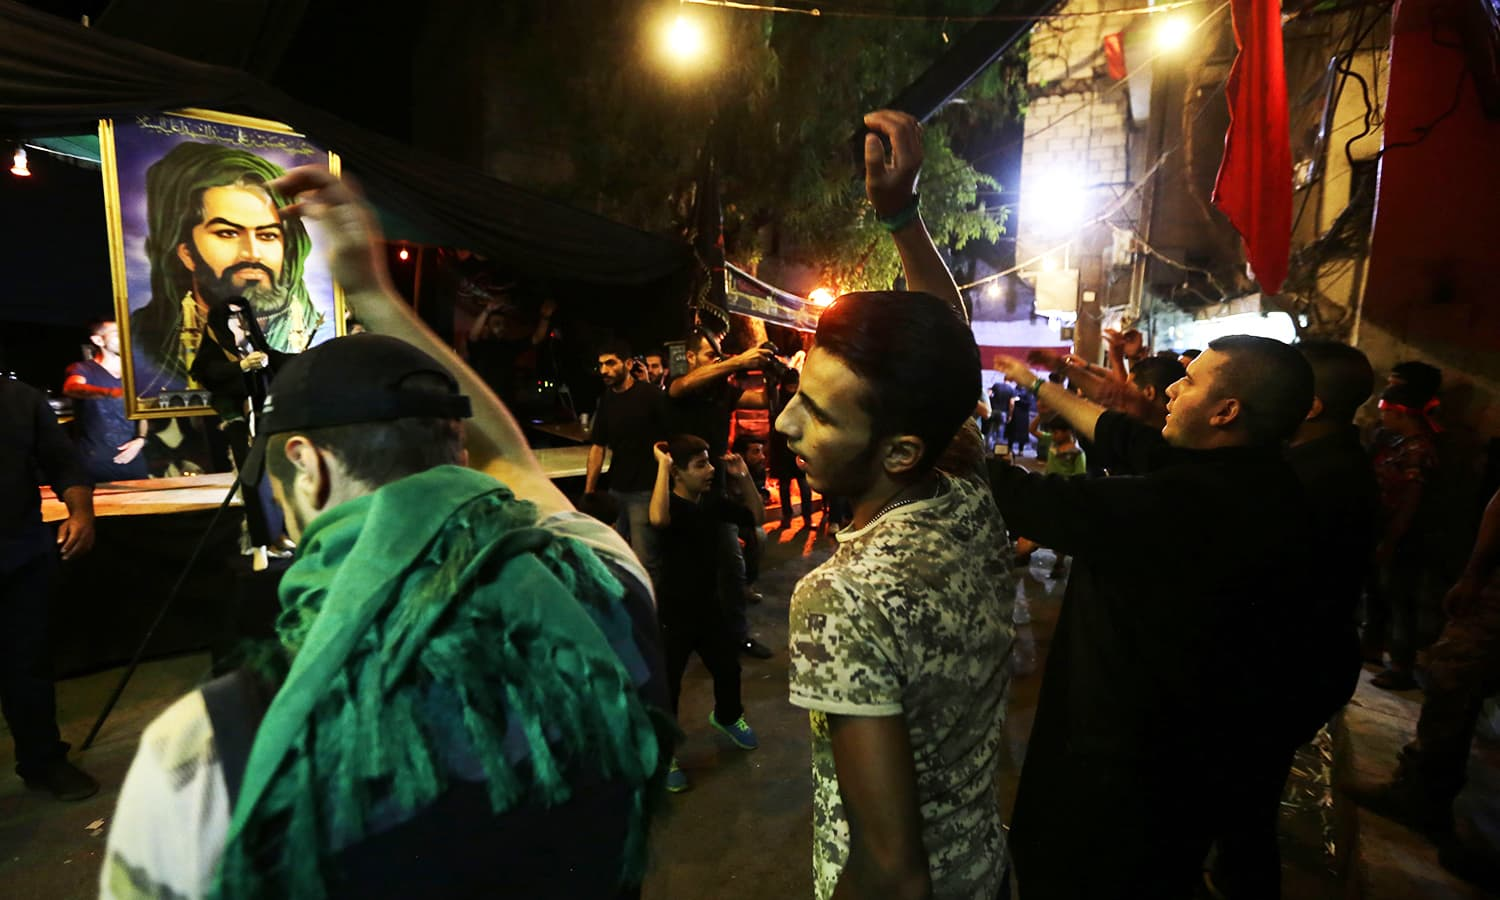 Syrian mourners take part in commemorations marking the mourning period of Ashura in Zine-el-Abidine neighbourhood in the capital Damascus. ─ AFP